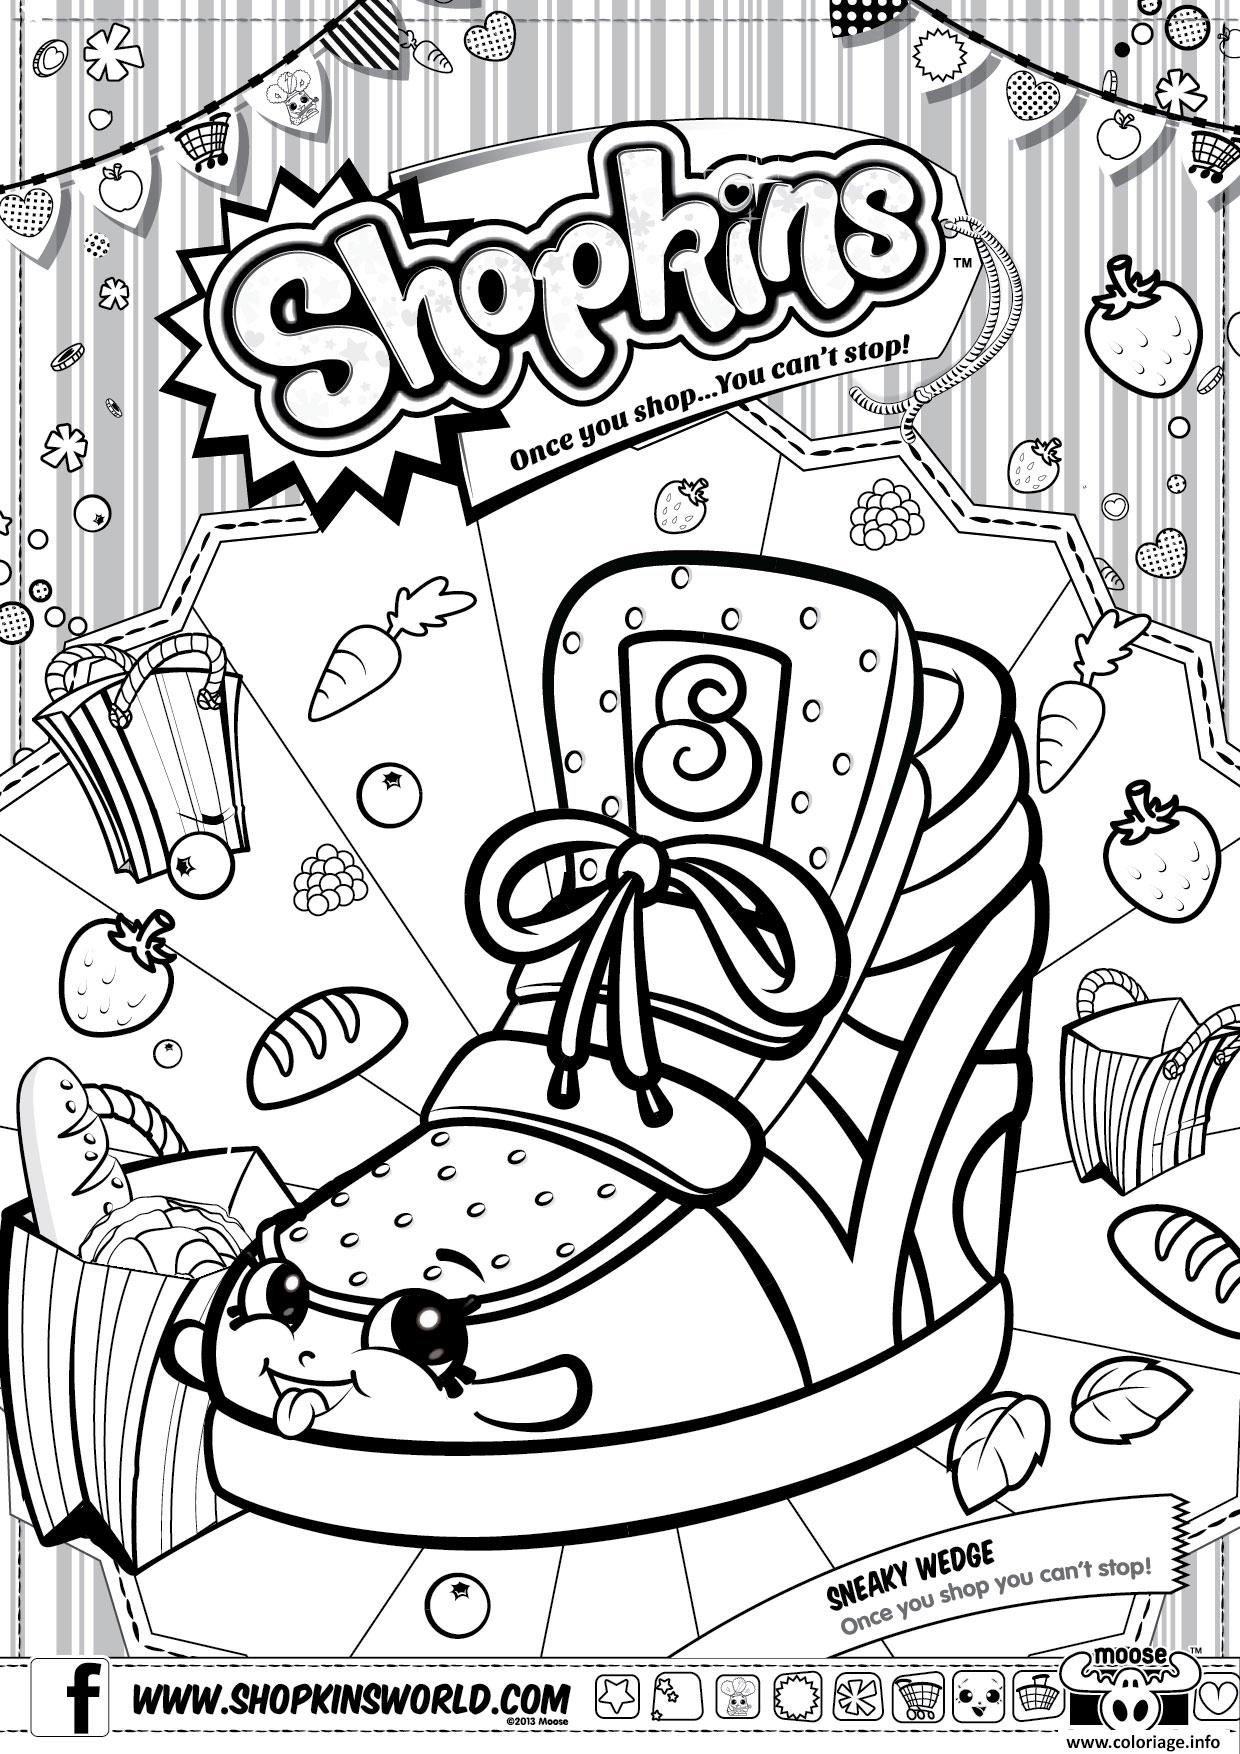 Coloriage Shopkins Sneaky Wedge